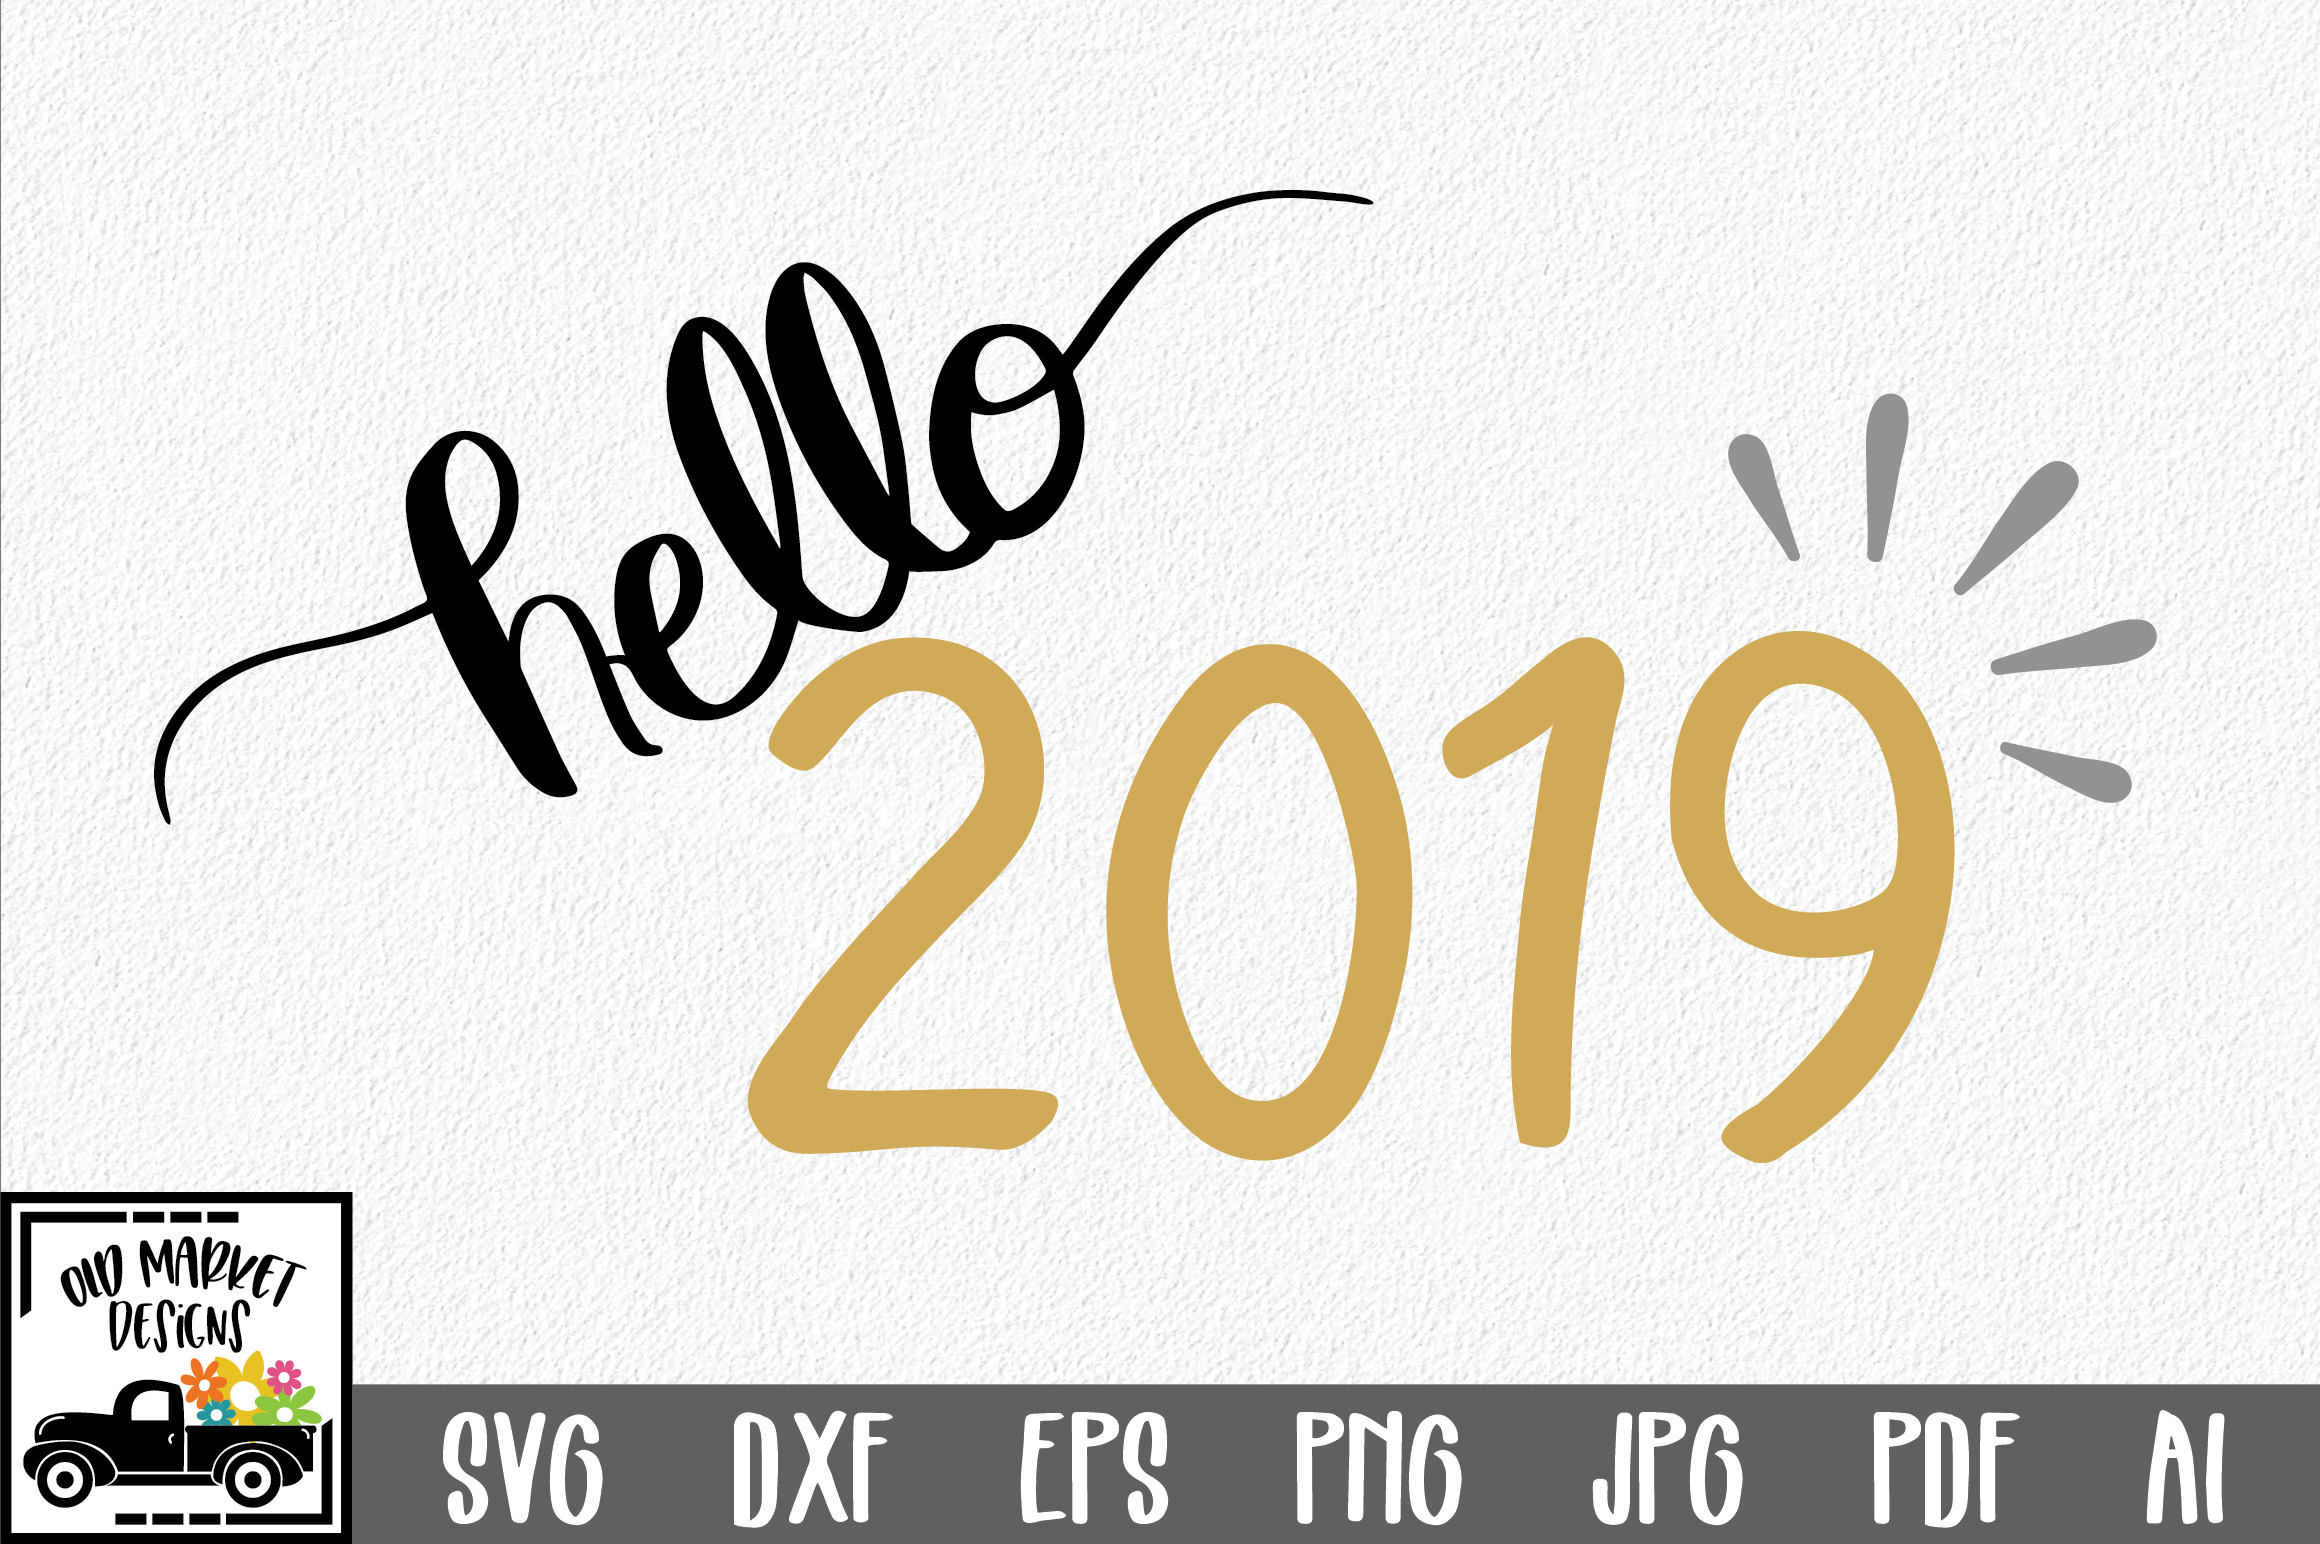 Download Free Hello 2019 Cut File New Year S Graphic By Oldmarketdesigns for Cricut Explore, Silhouette and other cutting machines.